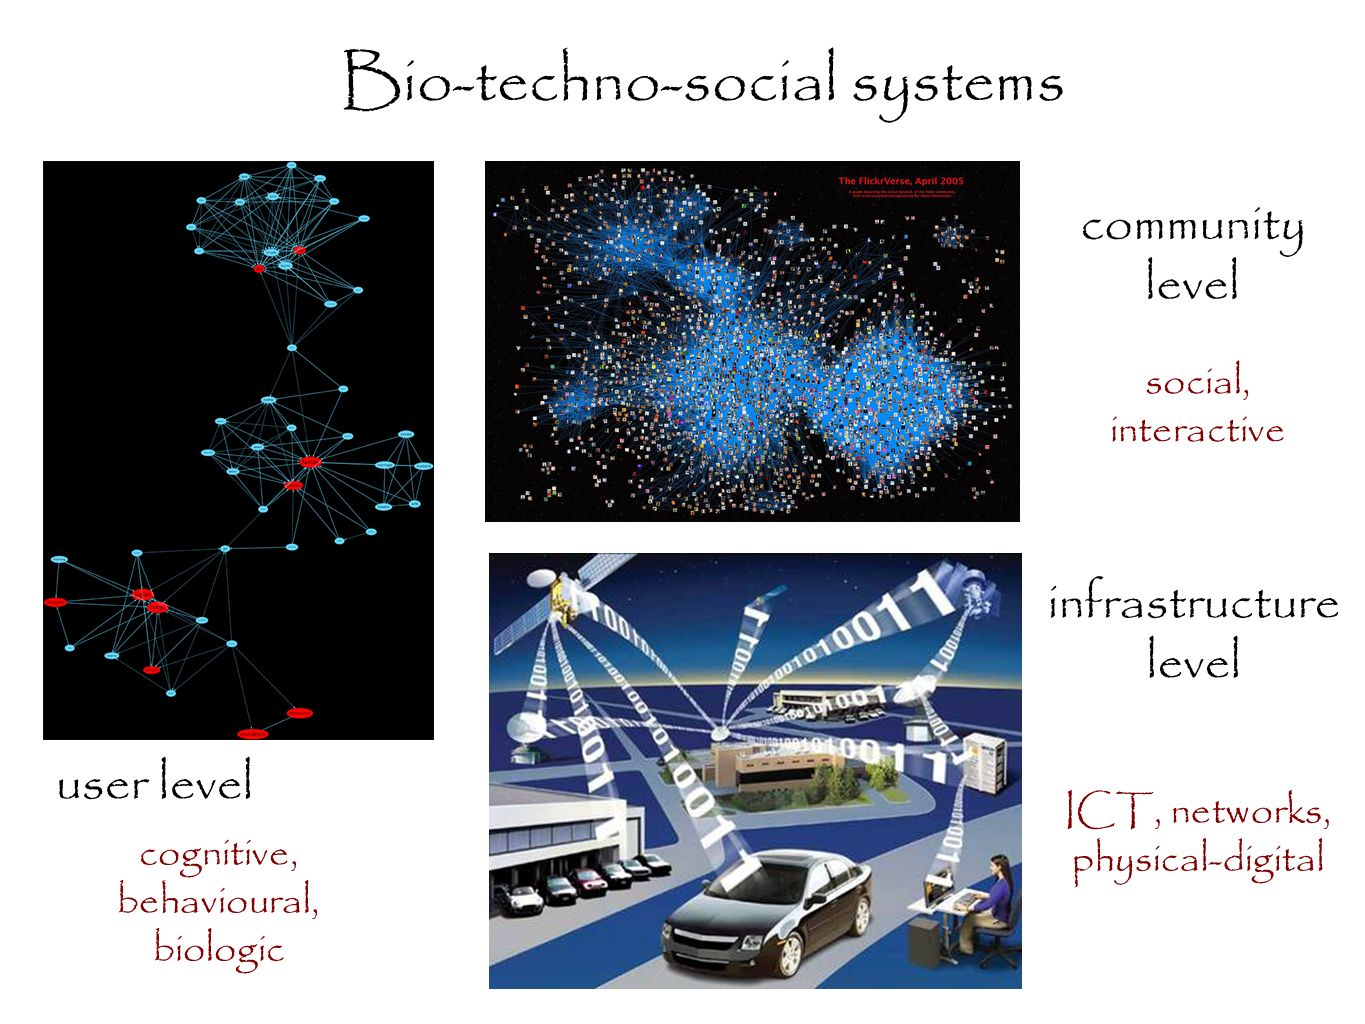 Bio-techno-social systems community level user level cognitive, behavioural, biologic social, interactive infrastructure level ICT, networks, physical-digital